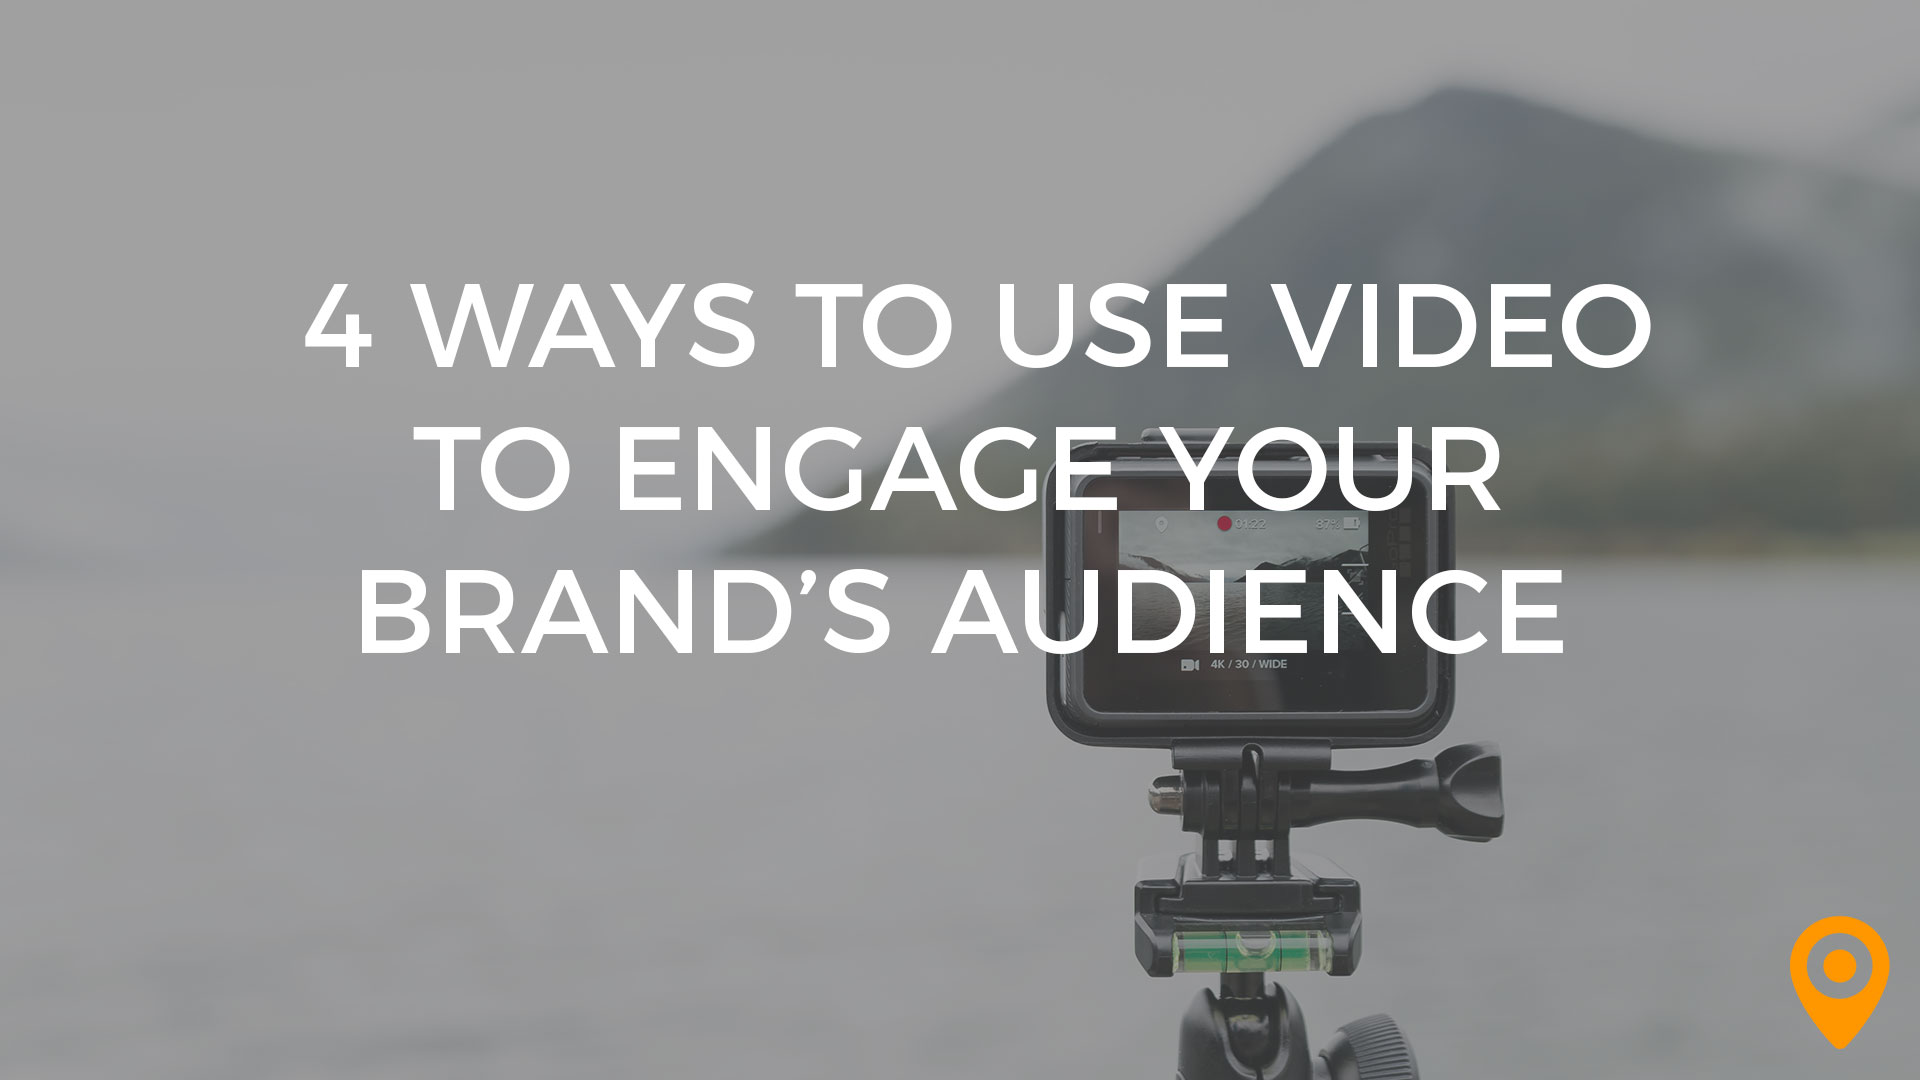 4 ways to use video